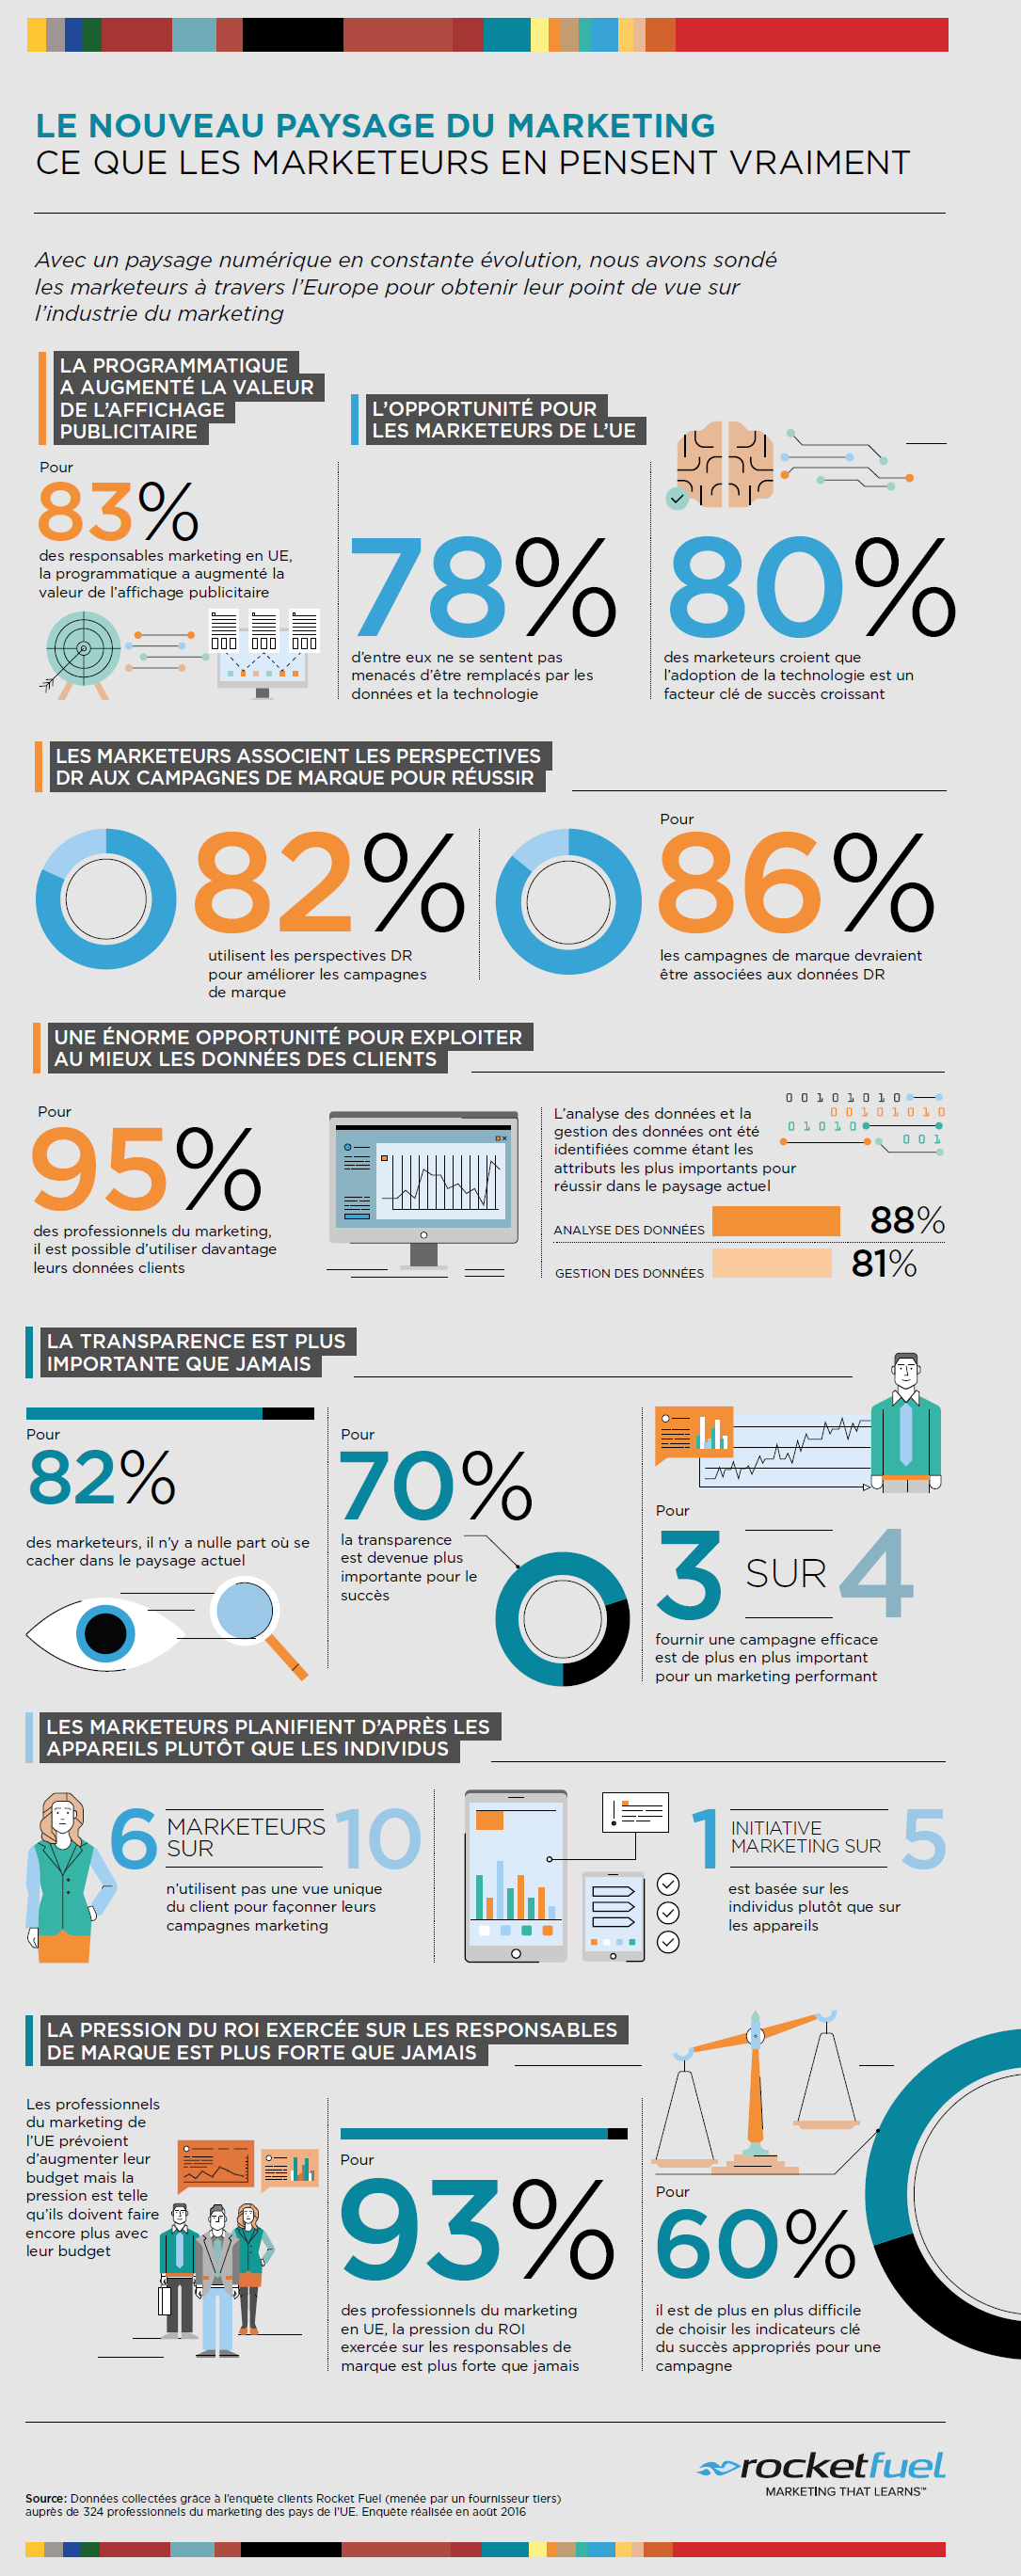 Rocketfuel_Infographie_Marketing